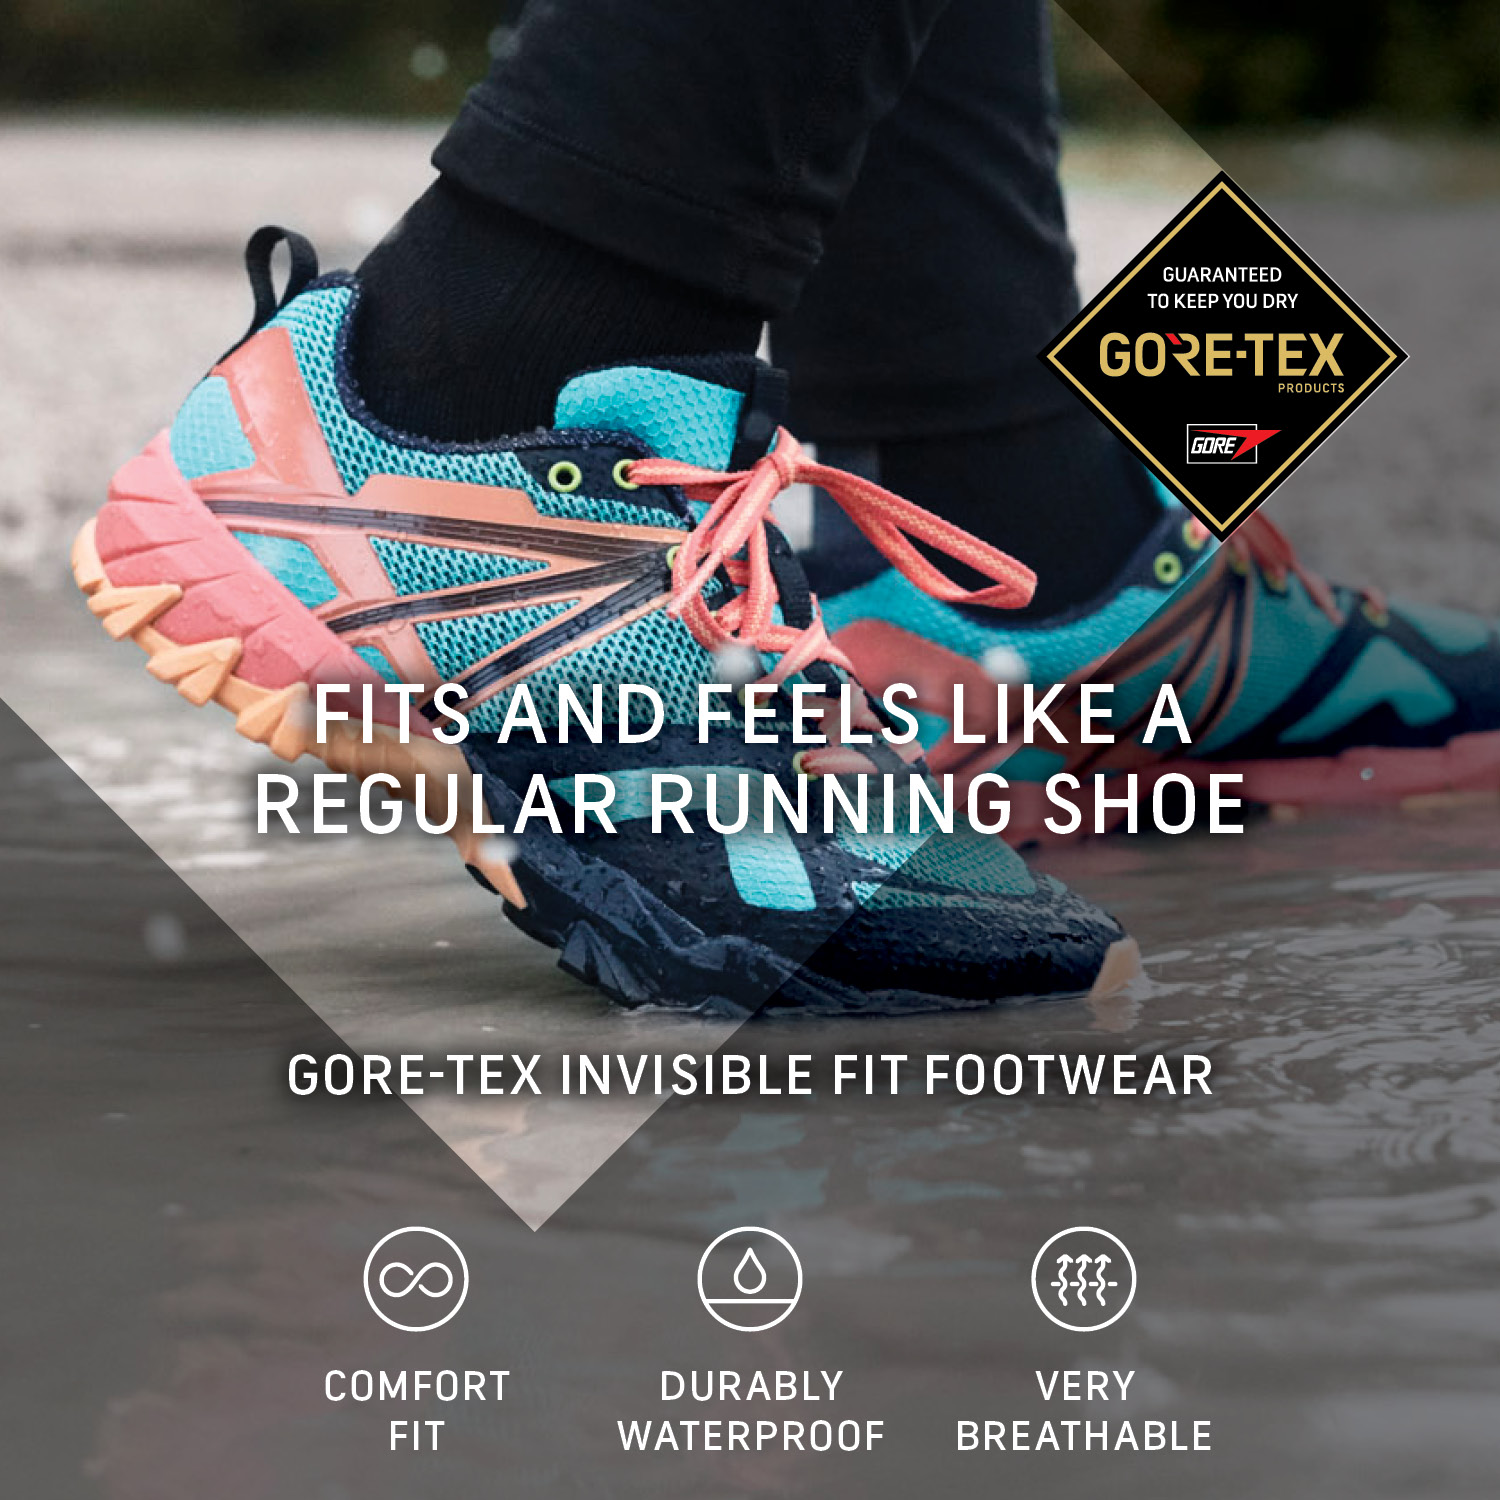 Image for article GORE-TEX Invisible Fit Footwear